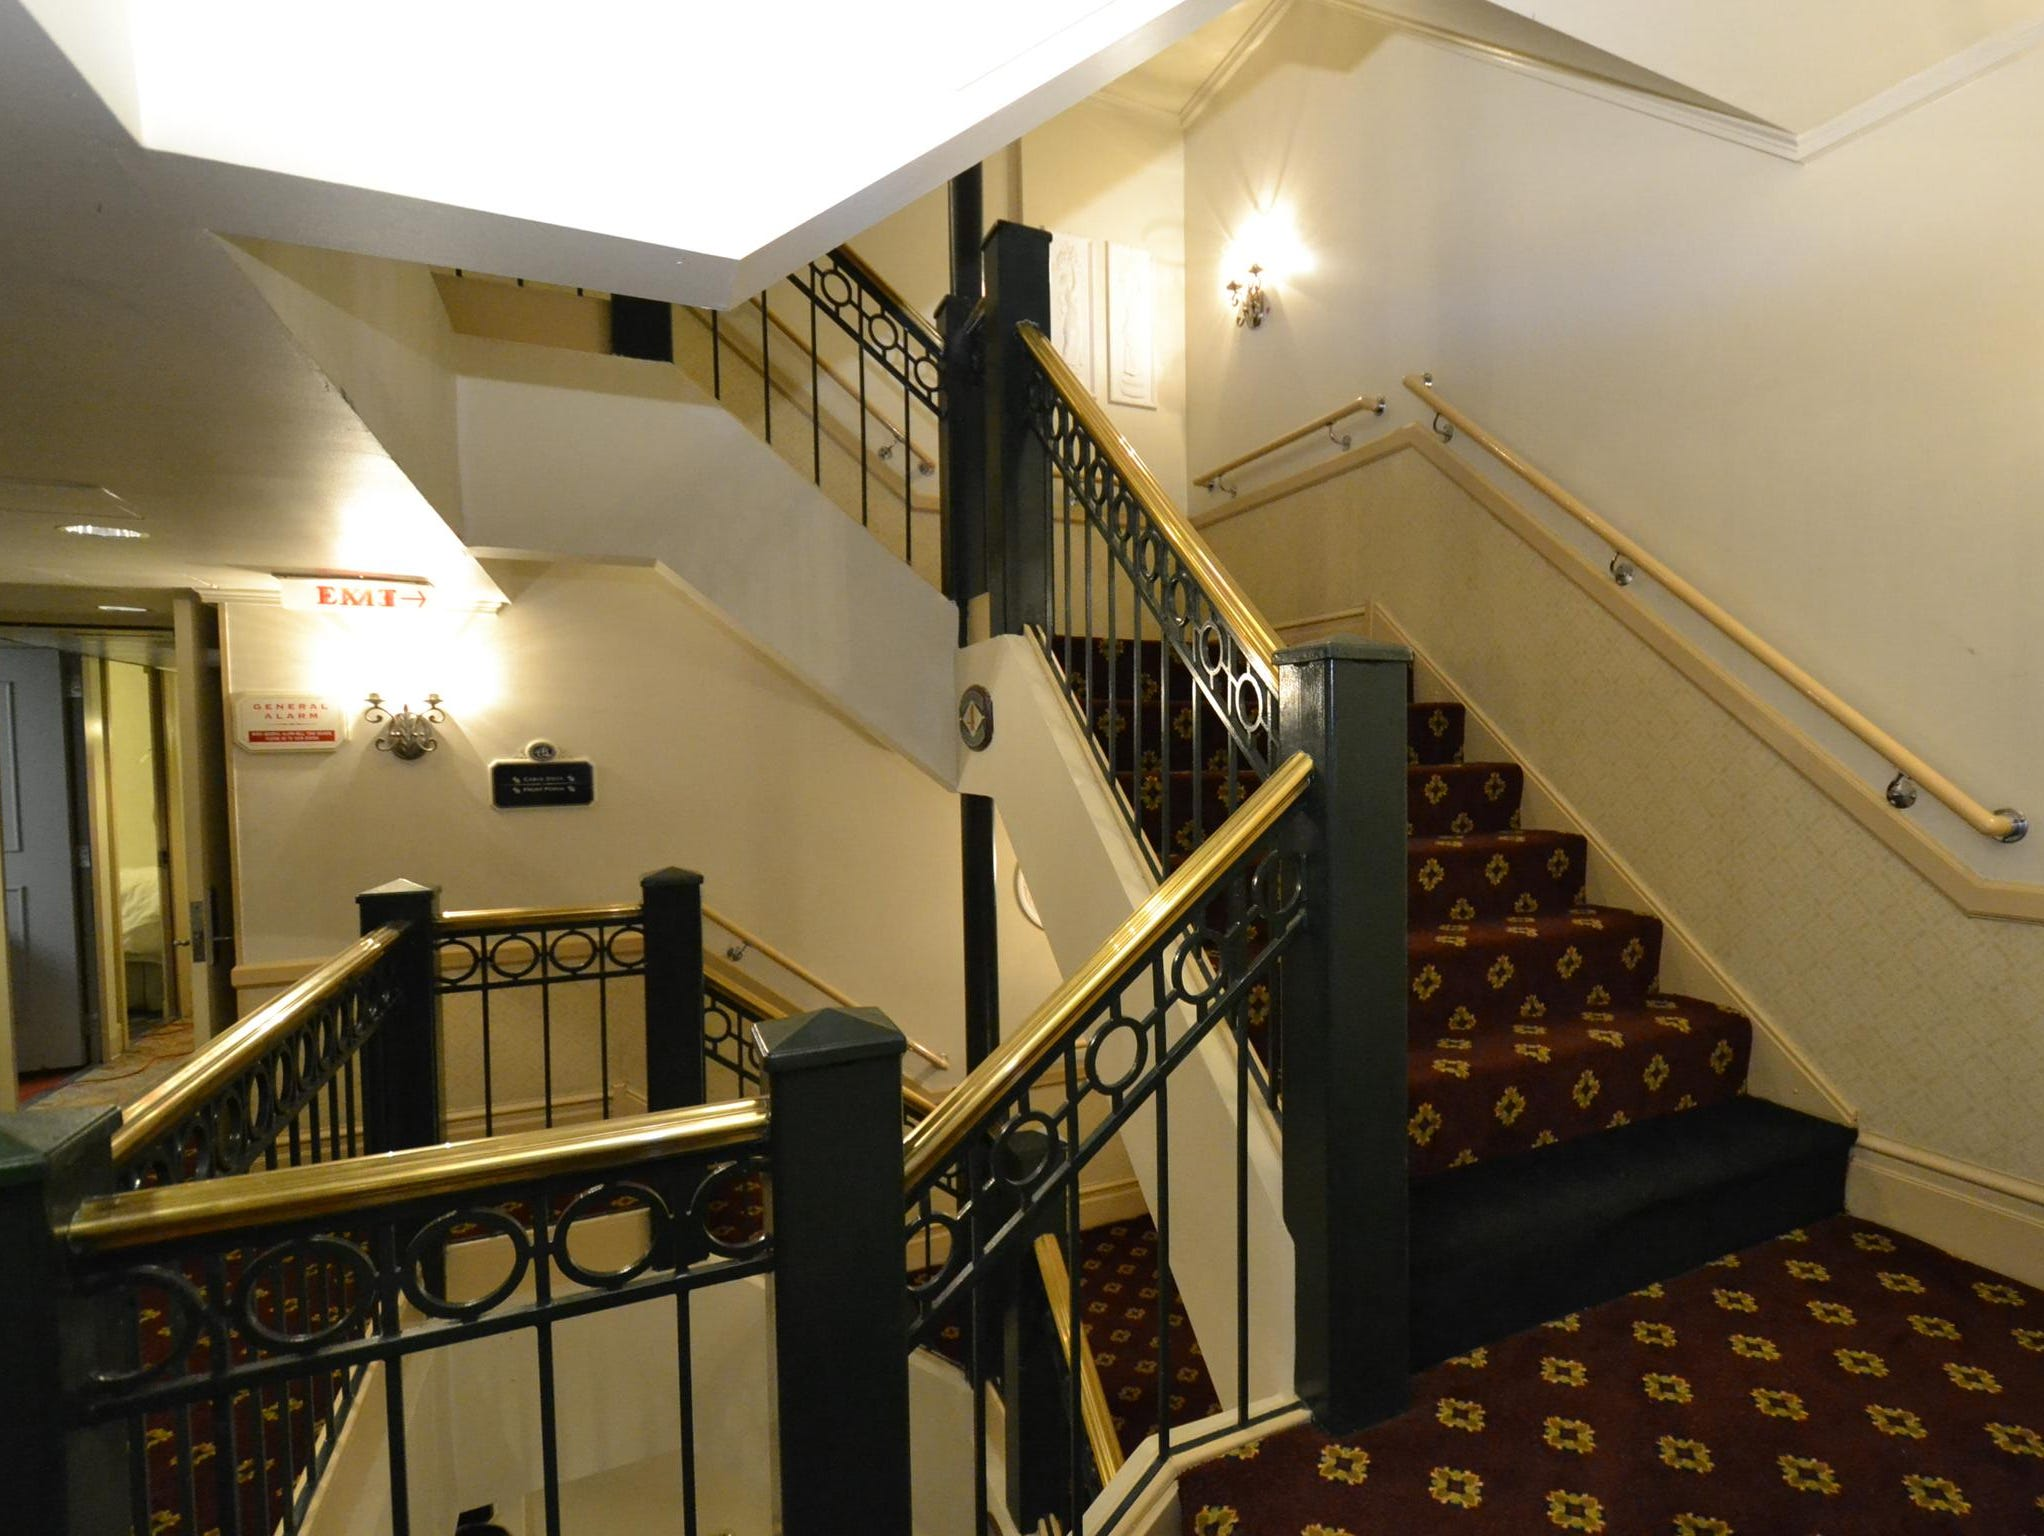 In addition to elevators, a Victorian-style stairway connects the American Queen's passenger decks.